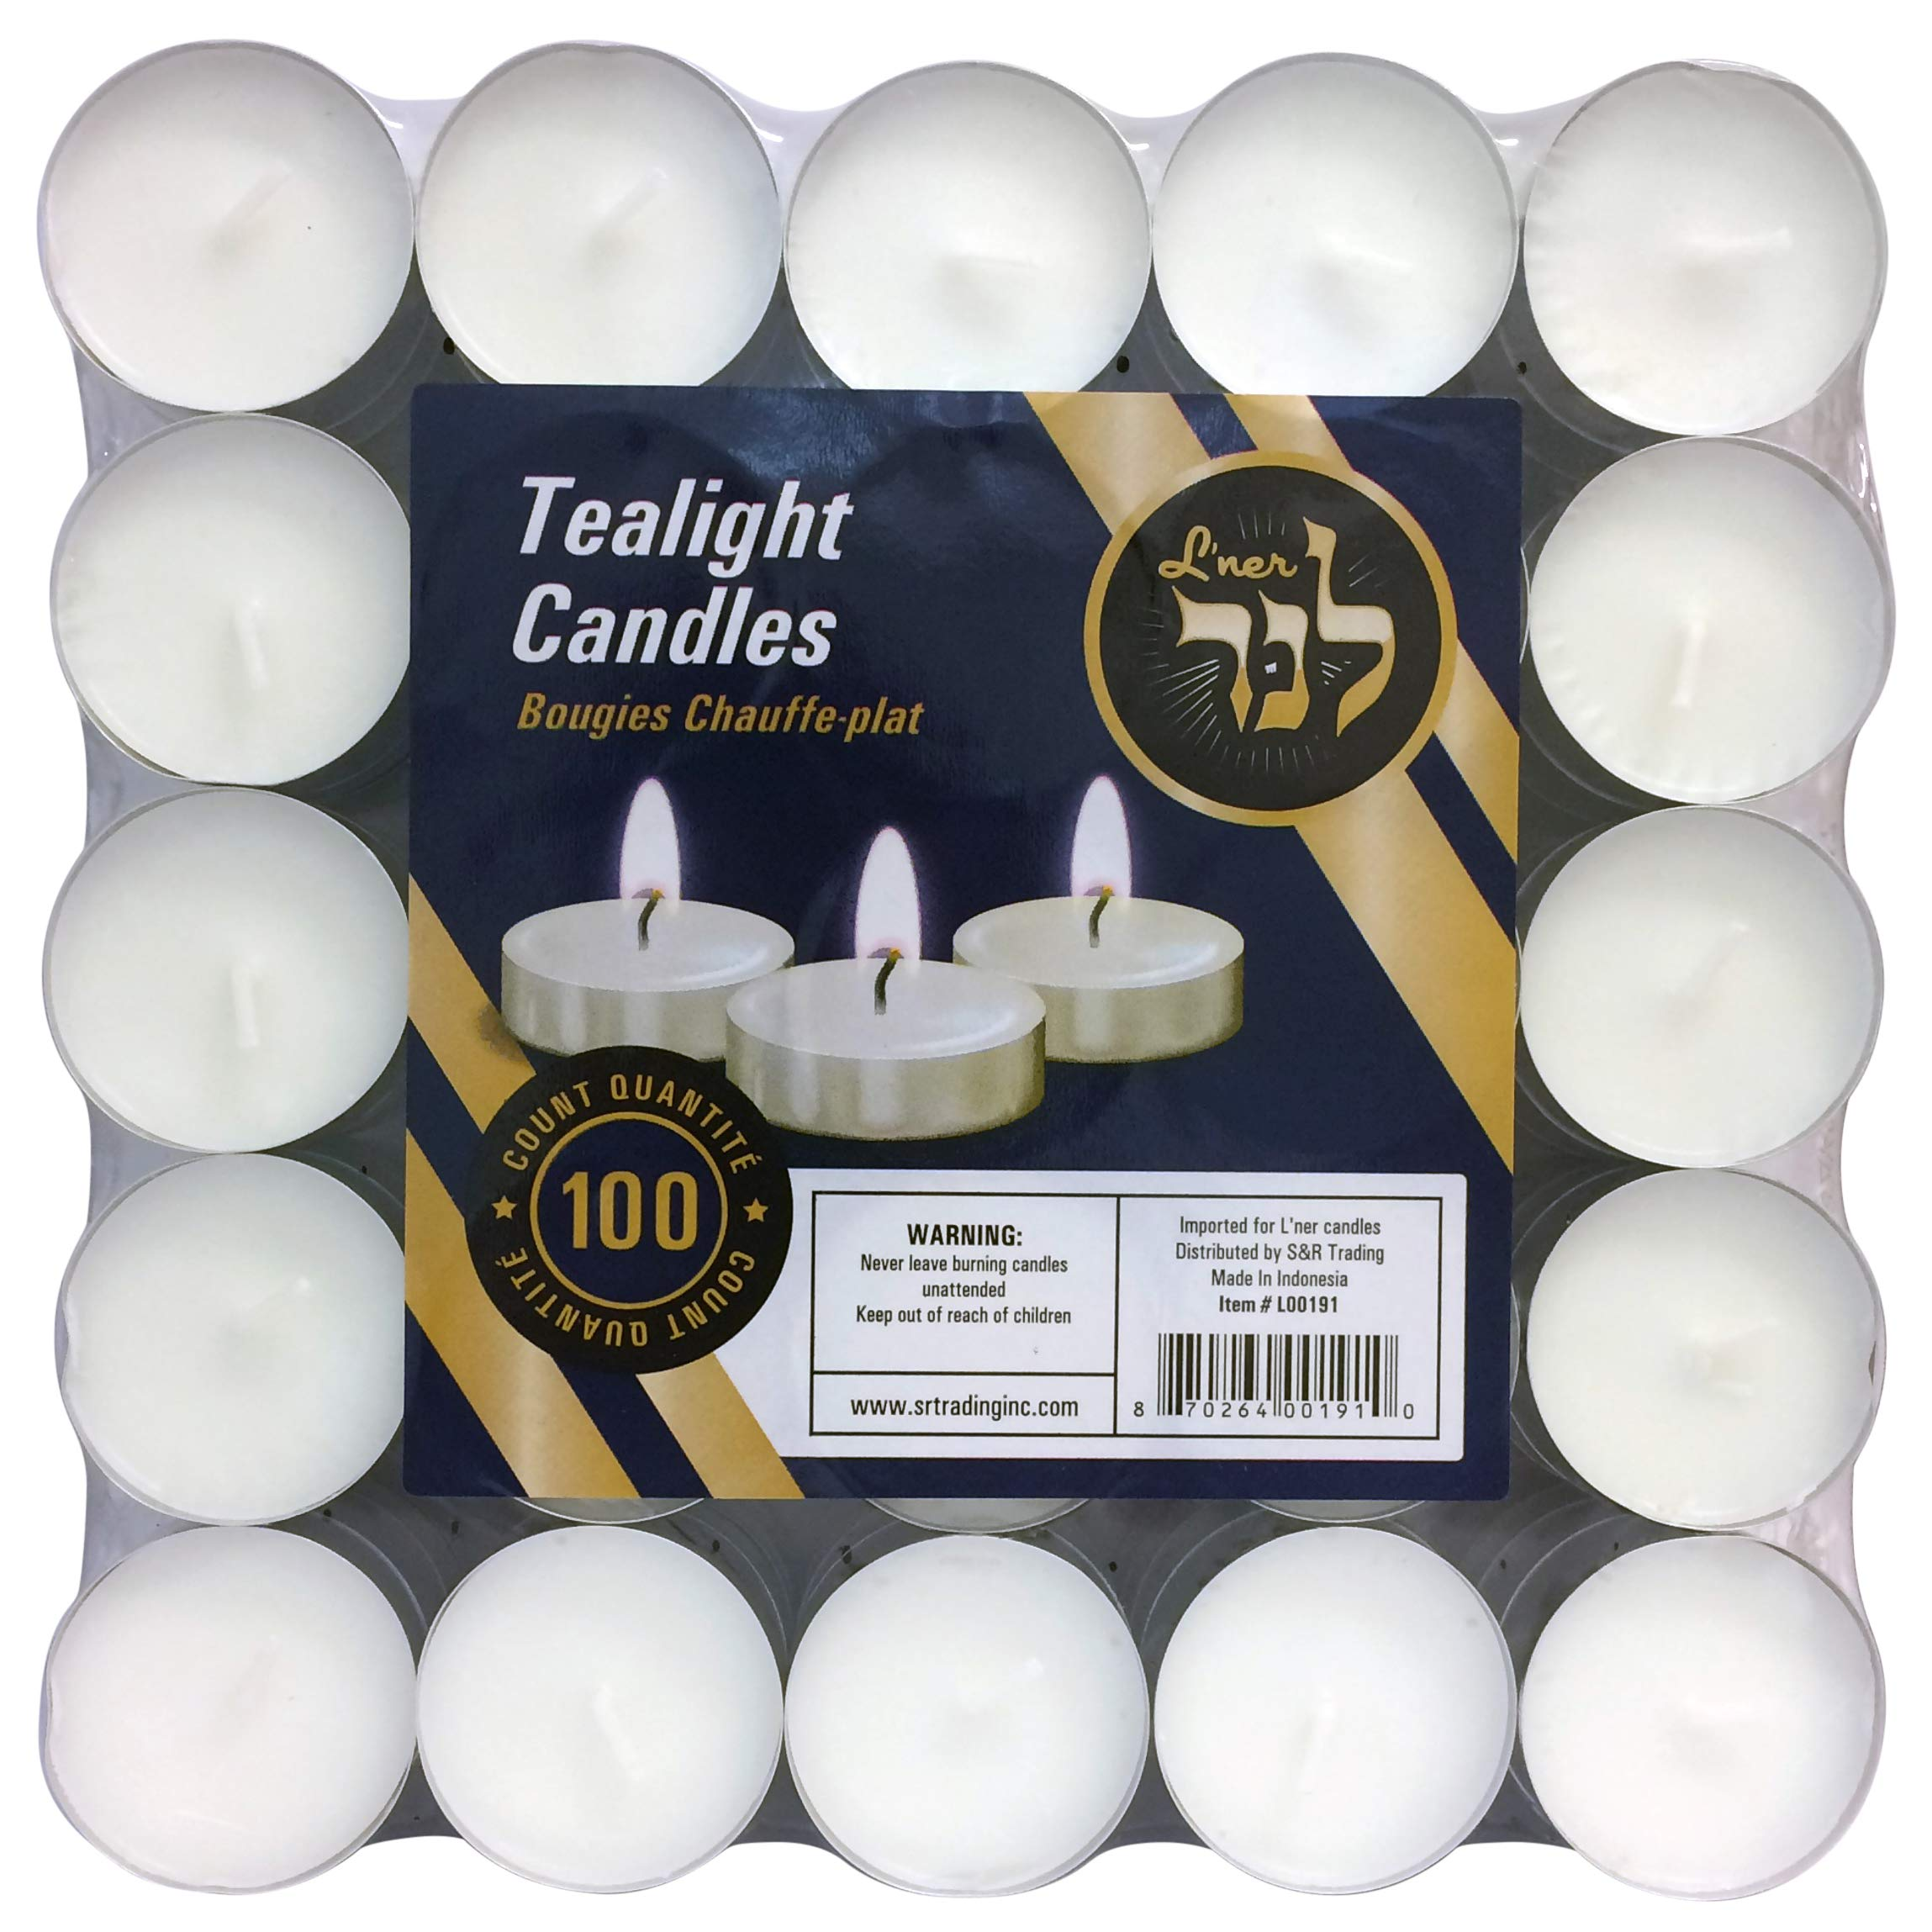 L'ner Tea Light Candles – Set of 100 Unscented Candles – Burns Aprx. 3.5 Hour – Party Candles – Tea Light Ambience Candles – Restaurant Decorations